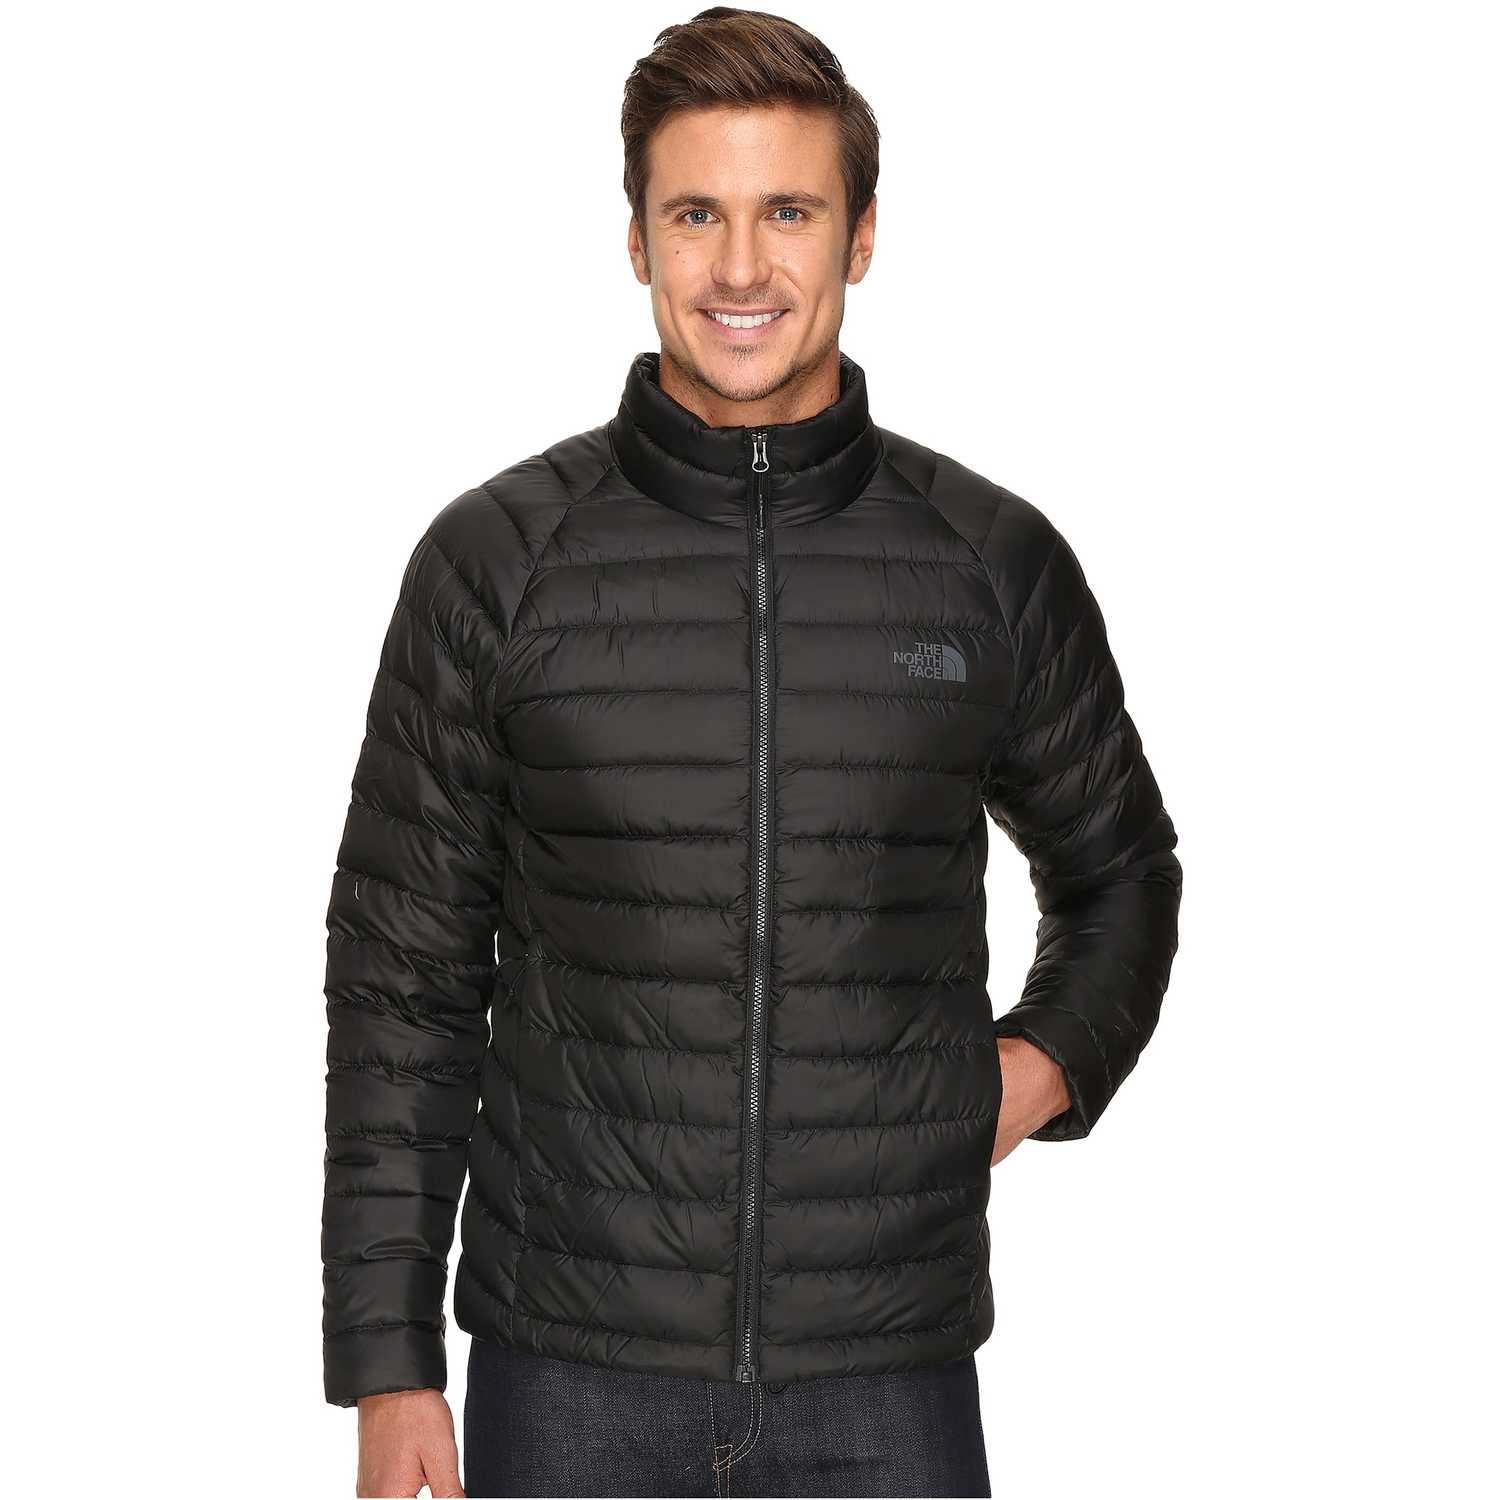 The North Face m trevail jacket Negro Plumas y alternos